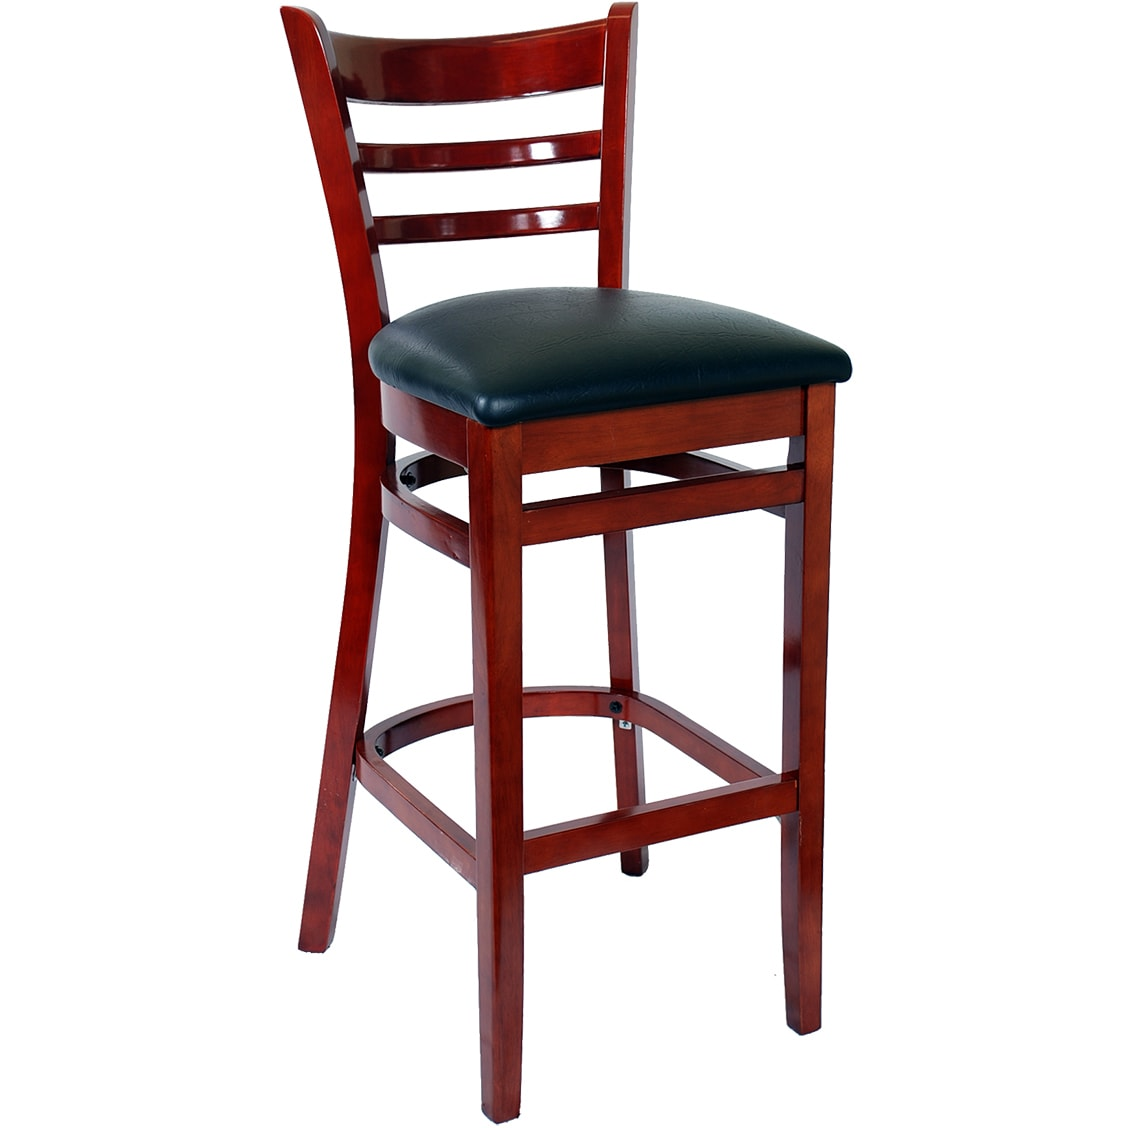 Amazing Ladder Back Wood Restaurant Bar Stool Andrewgaddart Wooden Chair Designs For Living Room Andrewgaddartcom